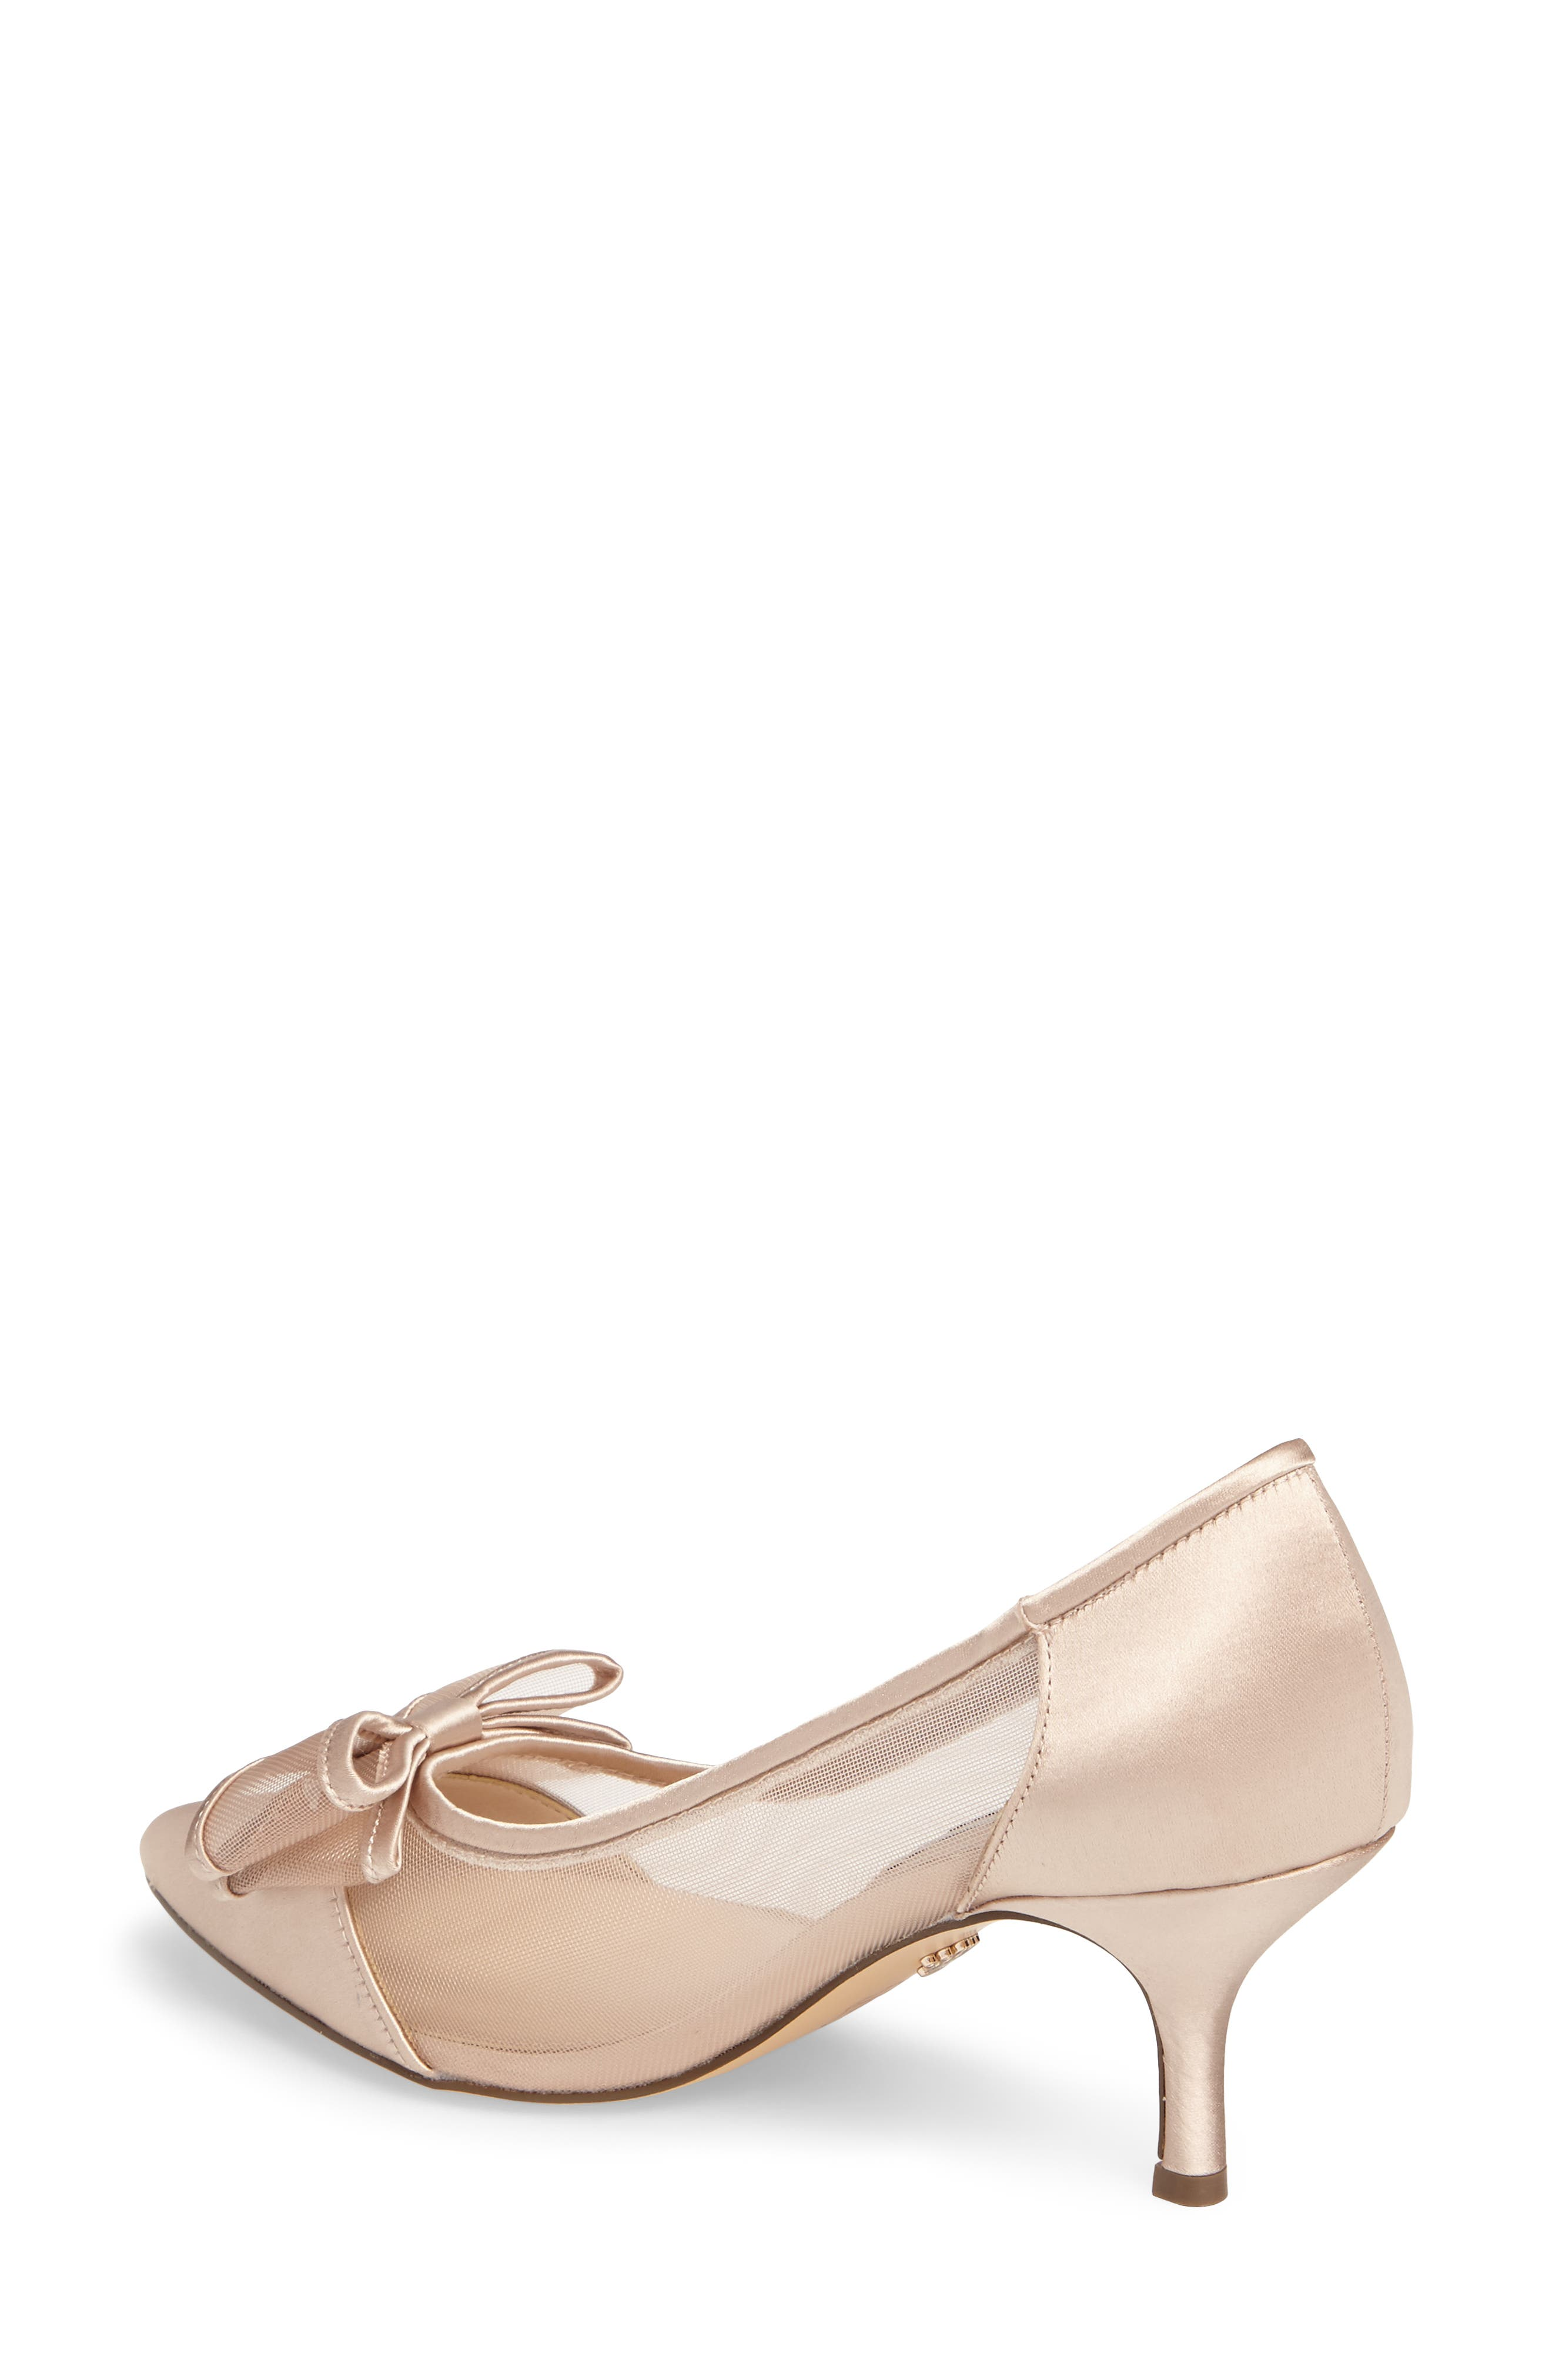 Bianca Pointy Toe Pump,                             Alternate thumbnail 2, color,                             CHAMPAGNE SATIN